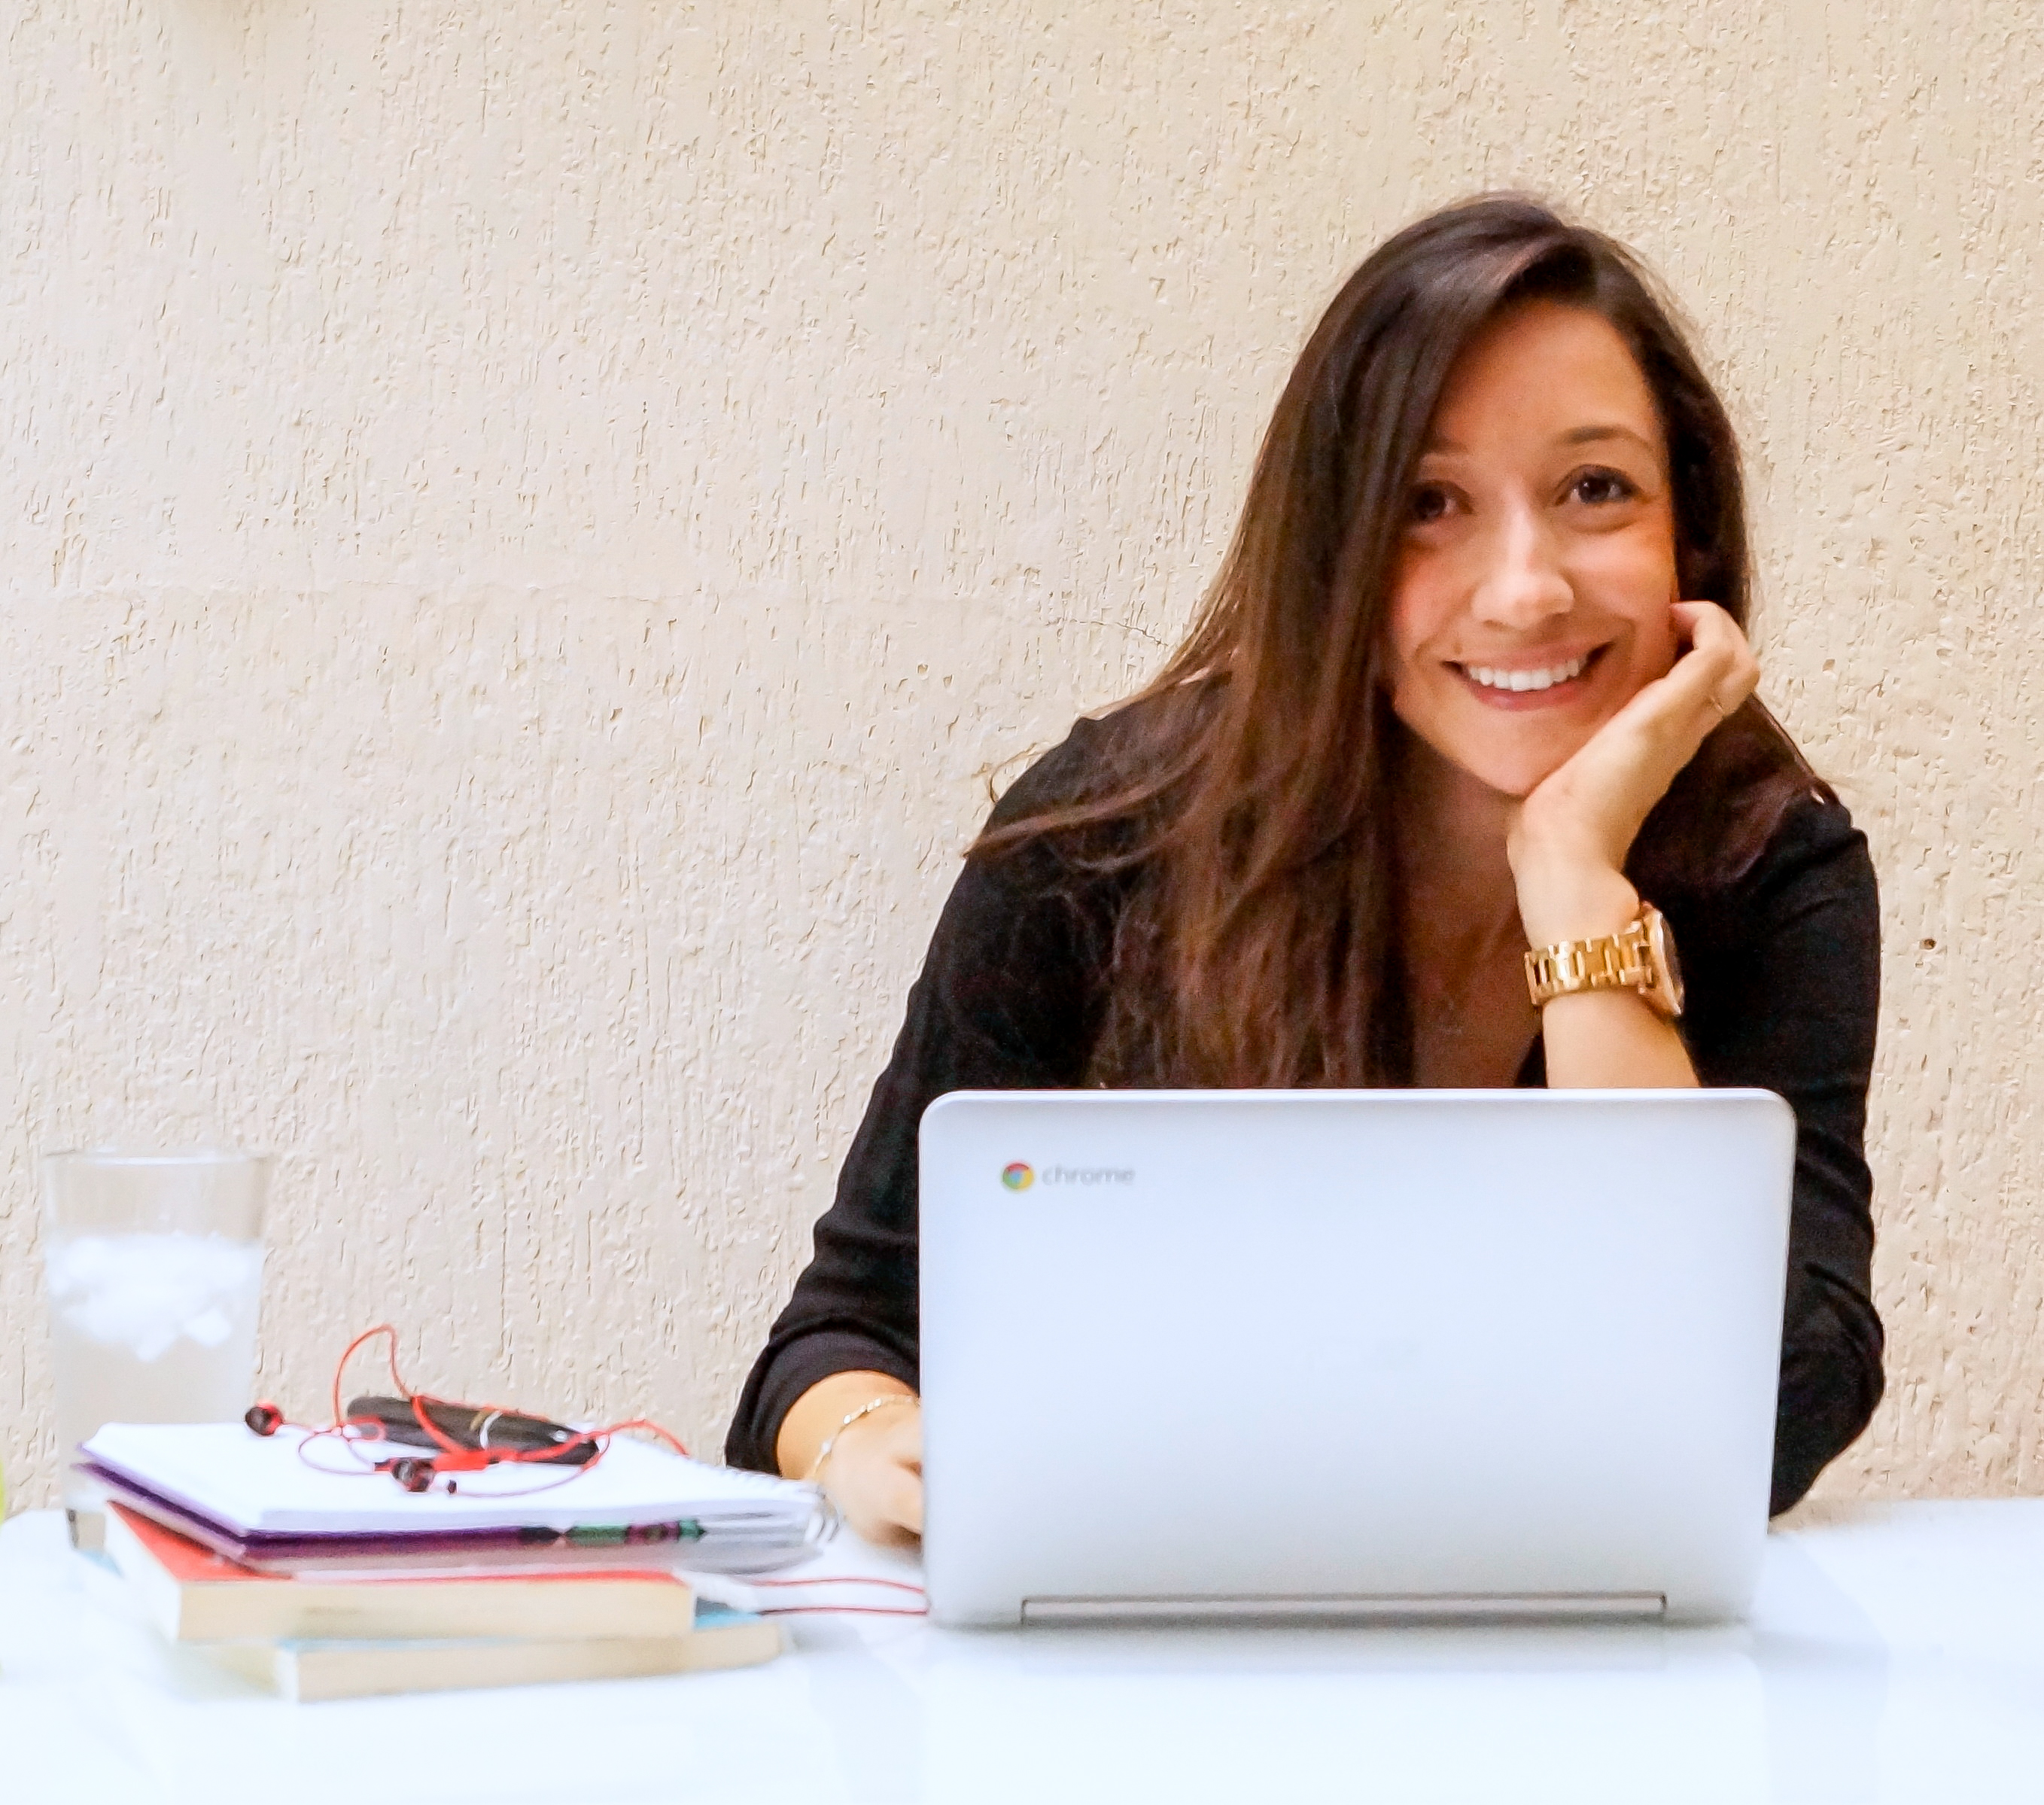 Carolina in front of her laptop, smiling.   This photo is a representation of her willingness to help people.  Health coach, nutrition advice & guidance towards a healthier lifestyle.